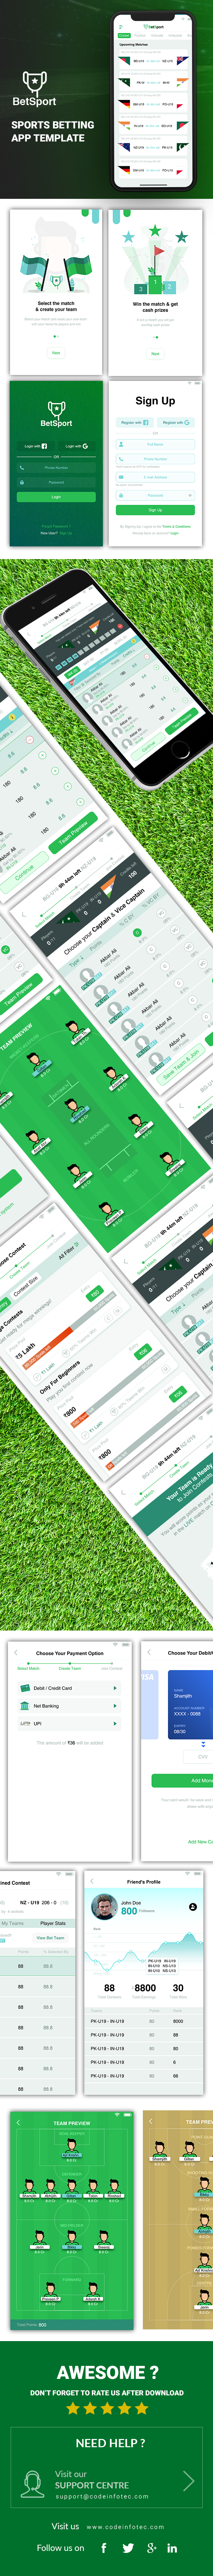 Envato-Presantationa-1 BetSport - Online Fantasy Sports Betting App Template - IONIC 5 Nulled Free Download BetSport – Online Fantasy Sports Betting App Template – IONIC 5 Nulled Free Download Envato Presantationa 1